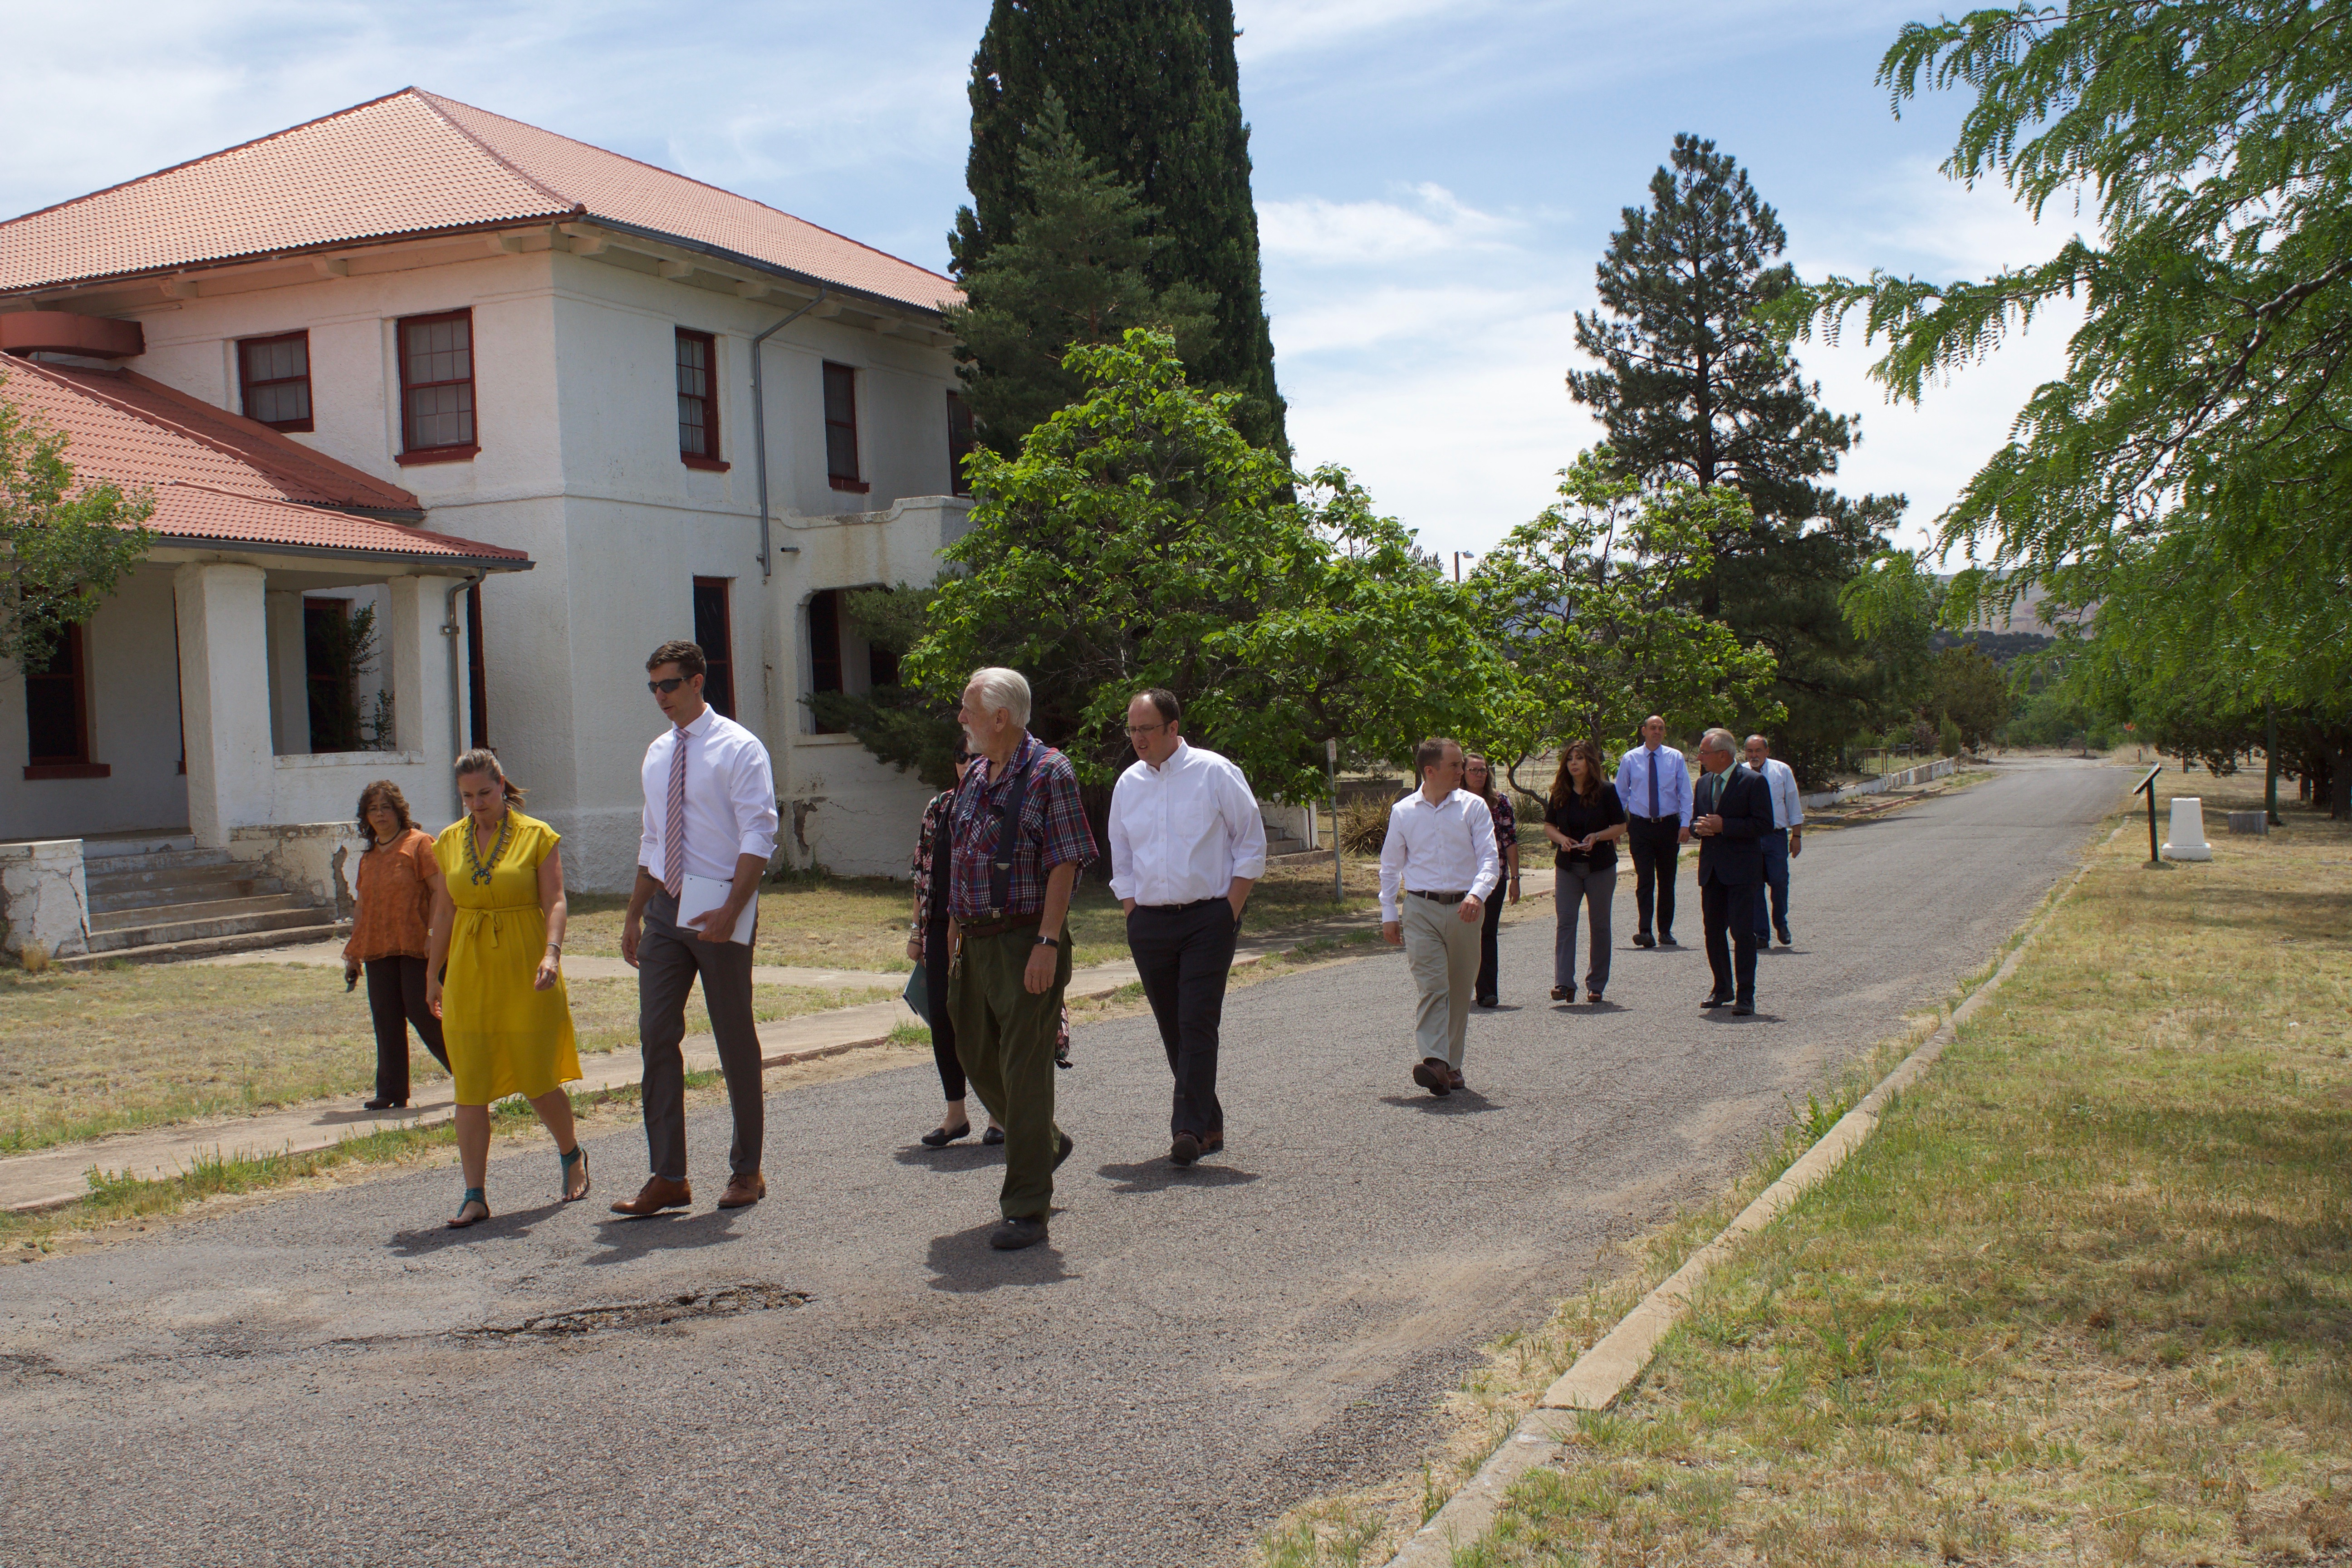 (Press Staff Photo by C.P. Thompson) State and local officials toured Fort Bayard on Monday following a meeting where the village of Santa Clara and state agreed to enter a lease for a few buildings at Fort Bayard.